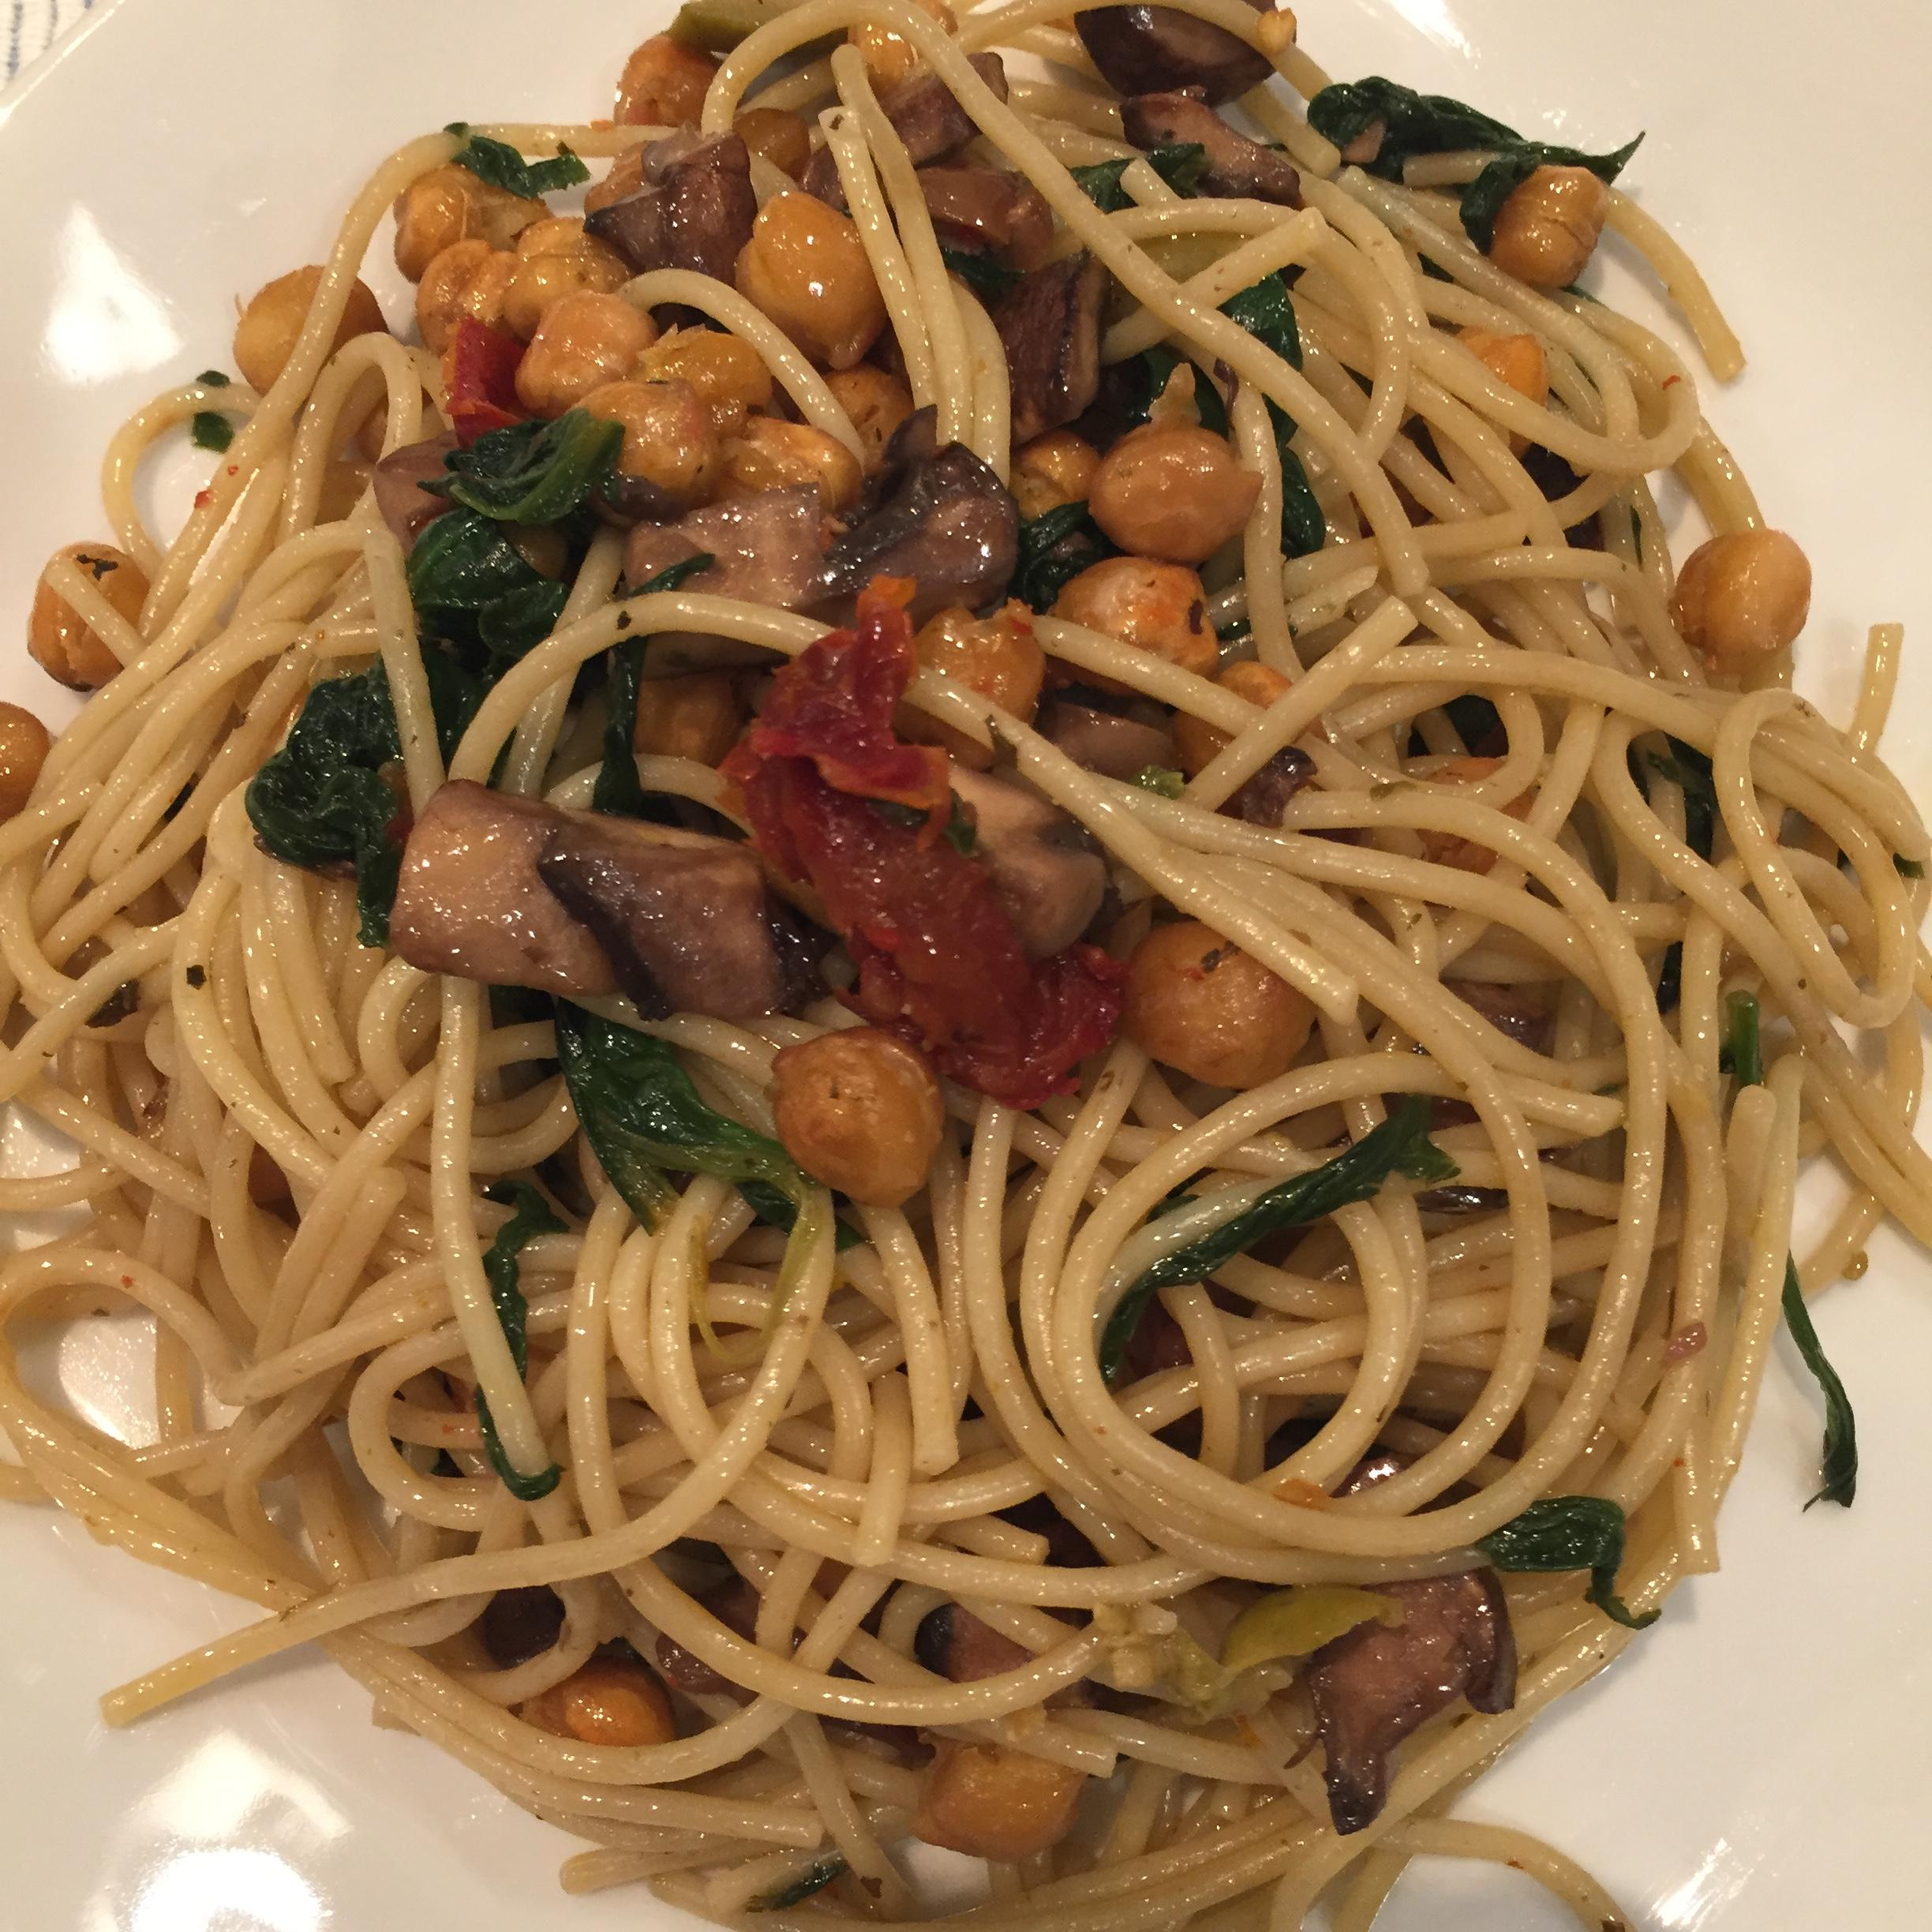 Pasta with sundried tomatoes, spinach, muchrooms, and toasted garbanzo beans